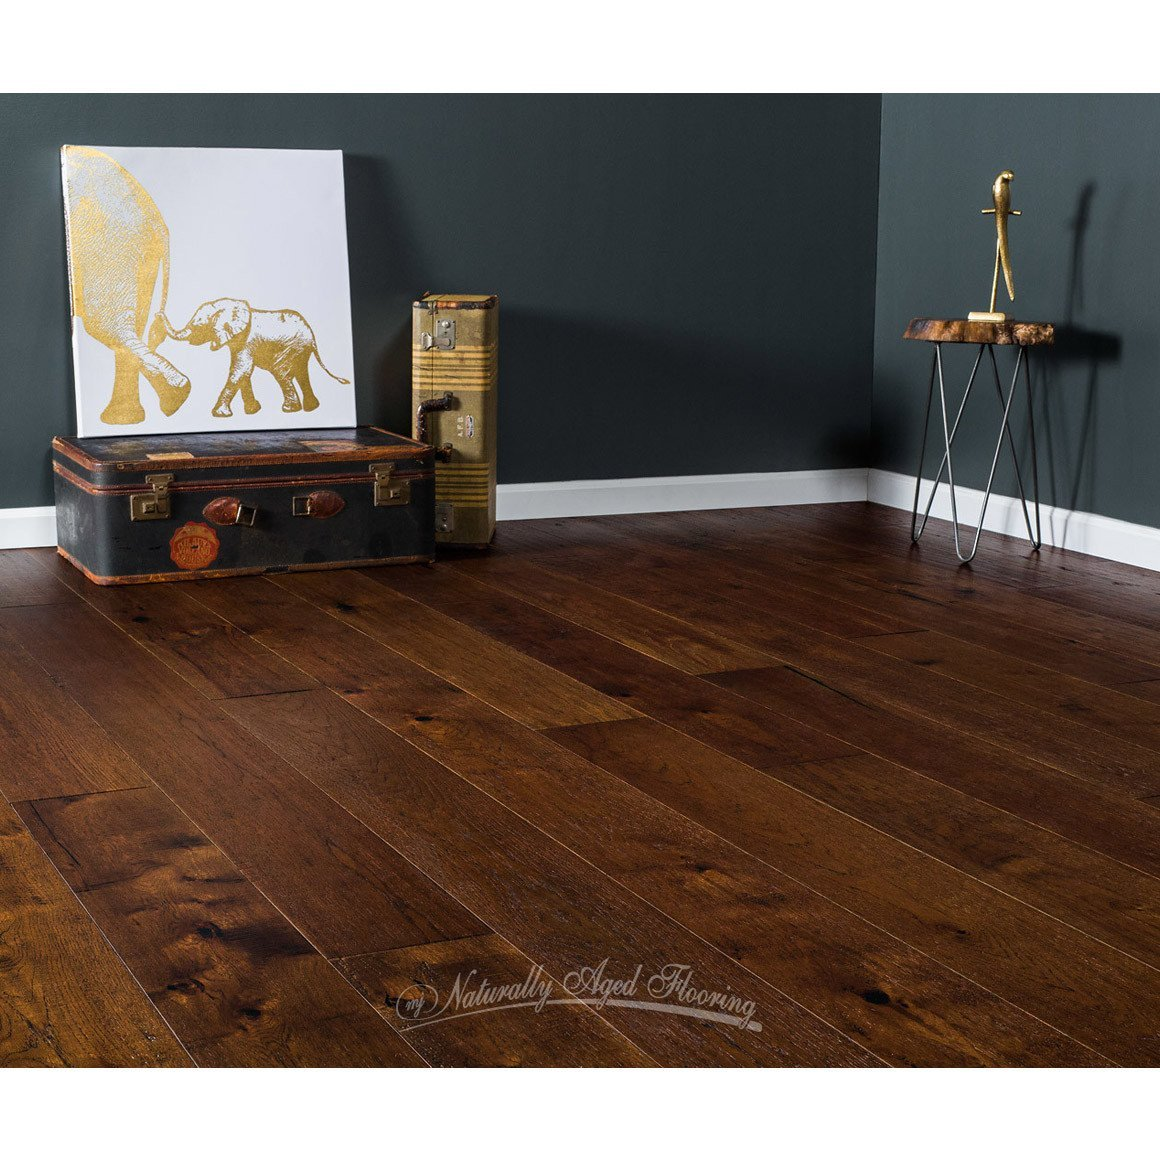 Naturally Aged Flooring Medallion Collection Lost Canyon Lifestyle